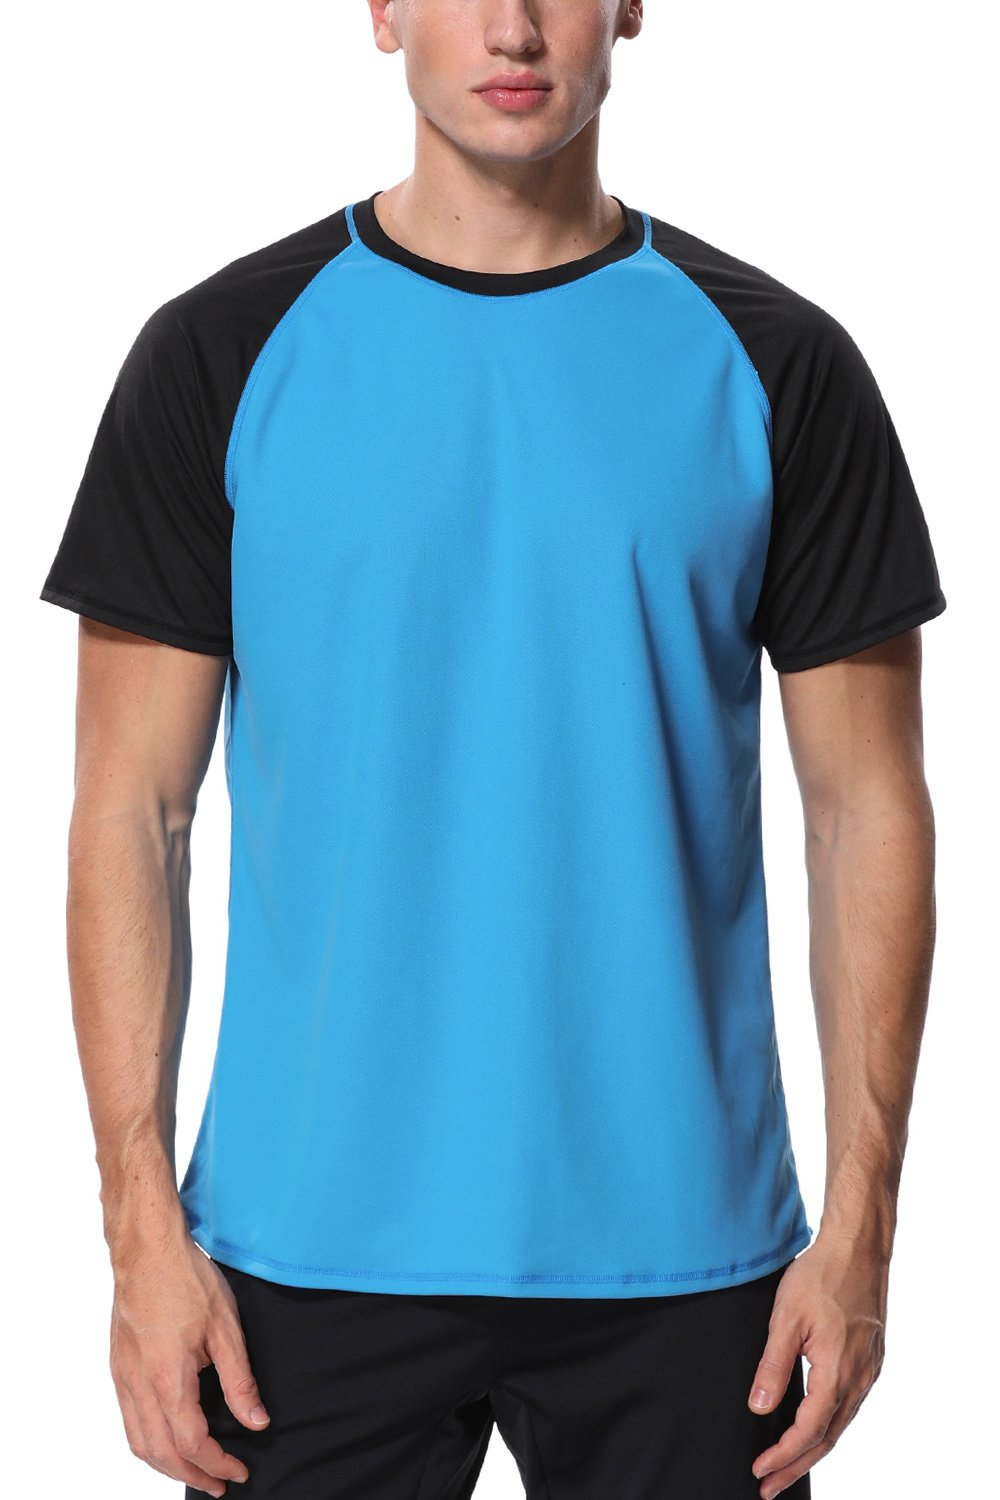 Charmo Swim Shirts uv Protection Shirt Mens Loose